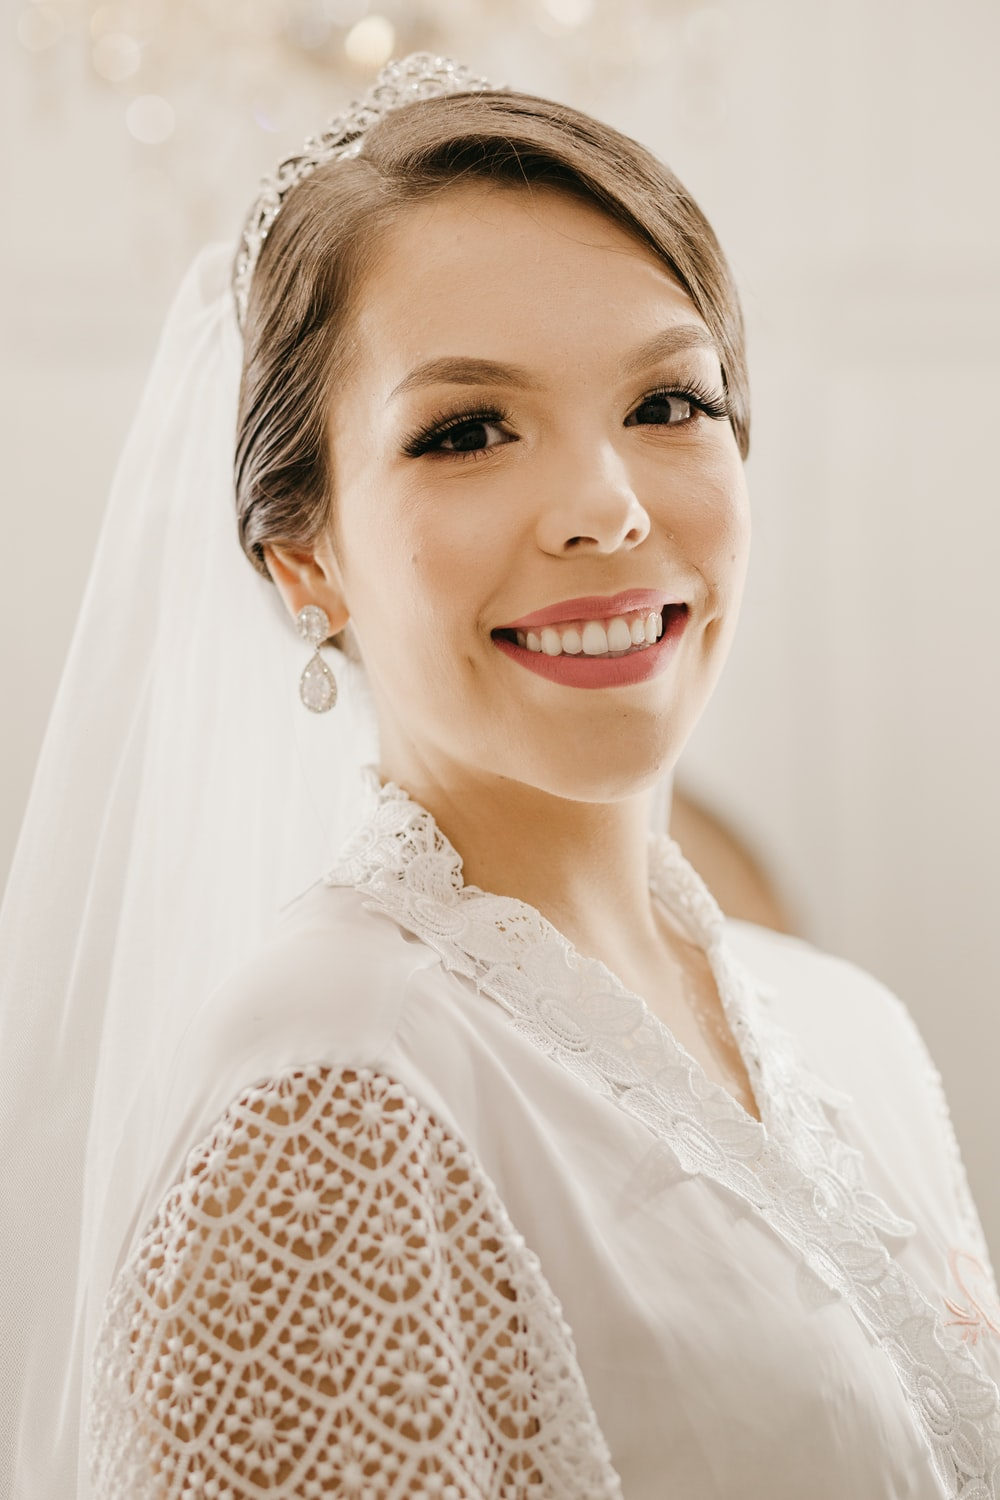 woman in white lace shirt